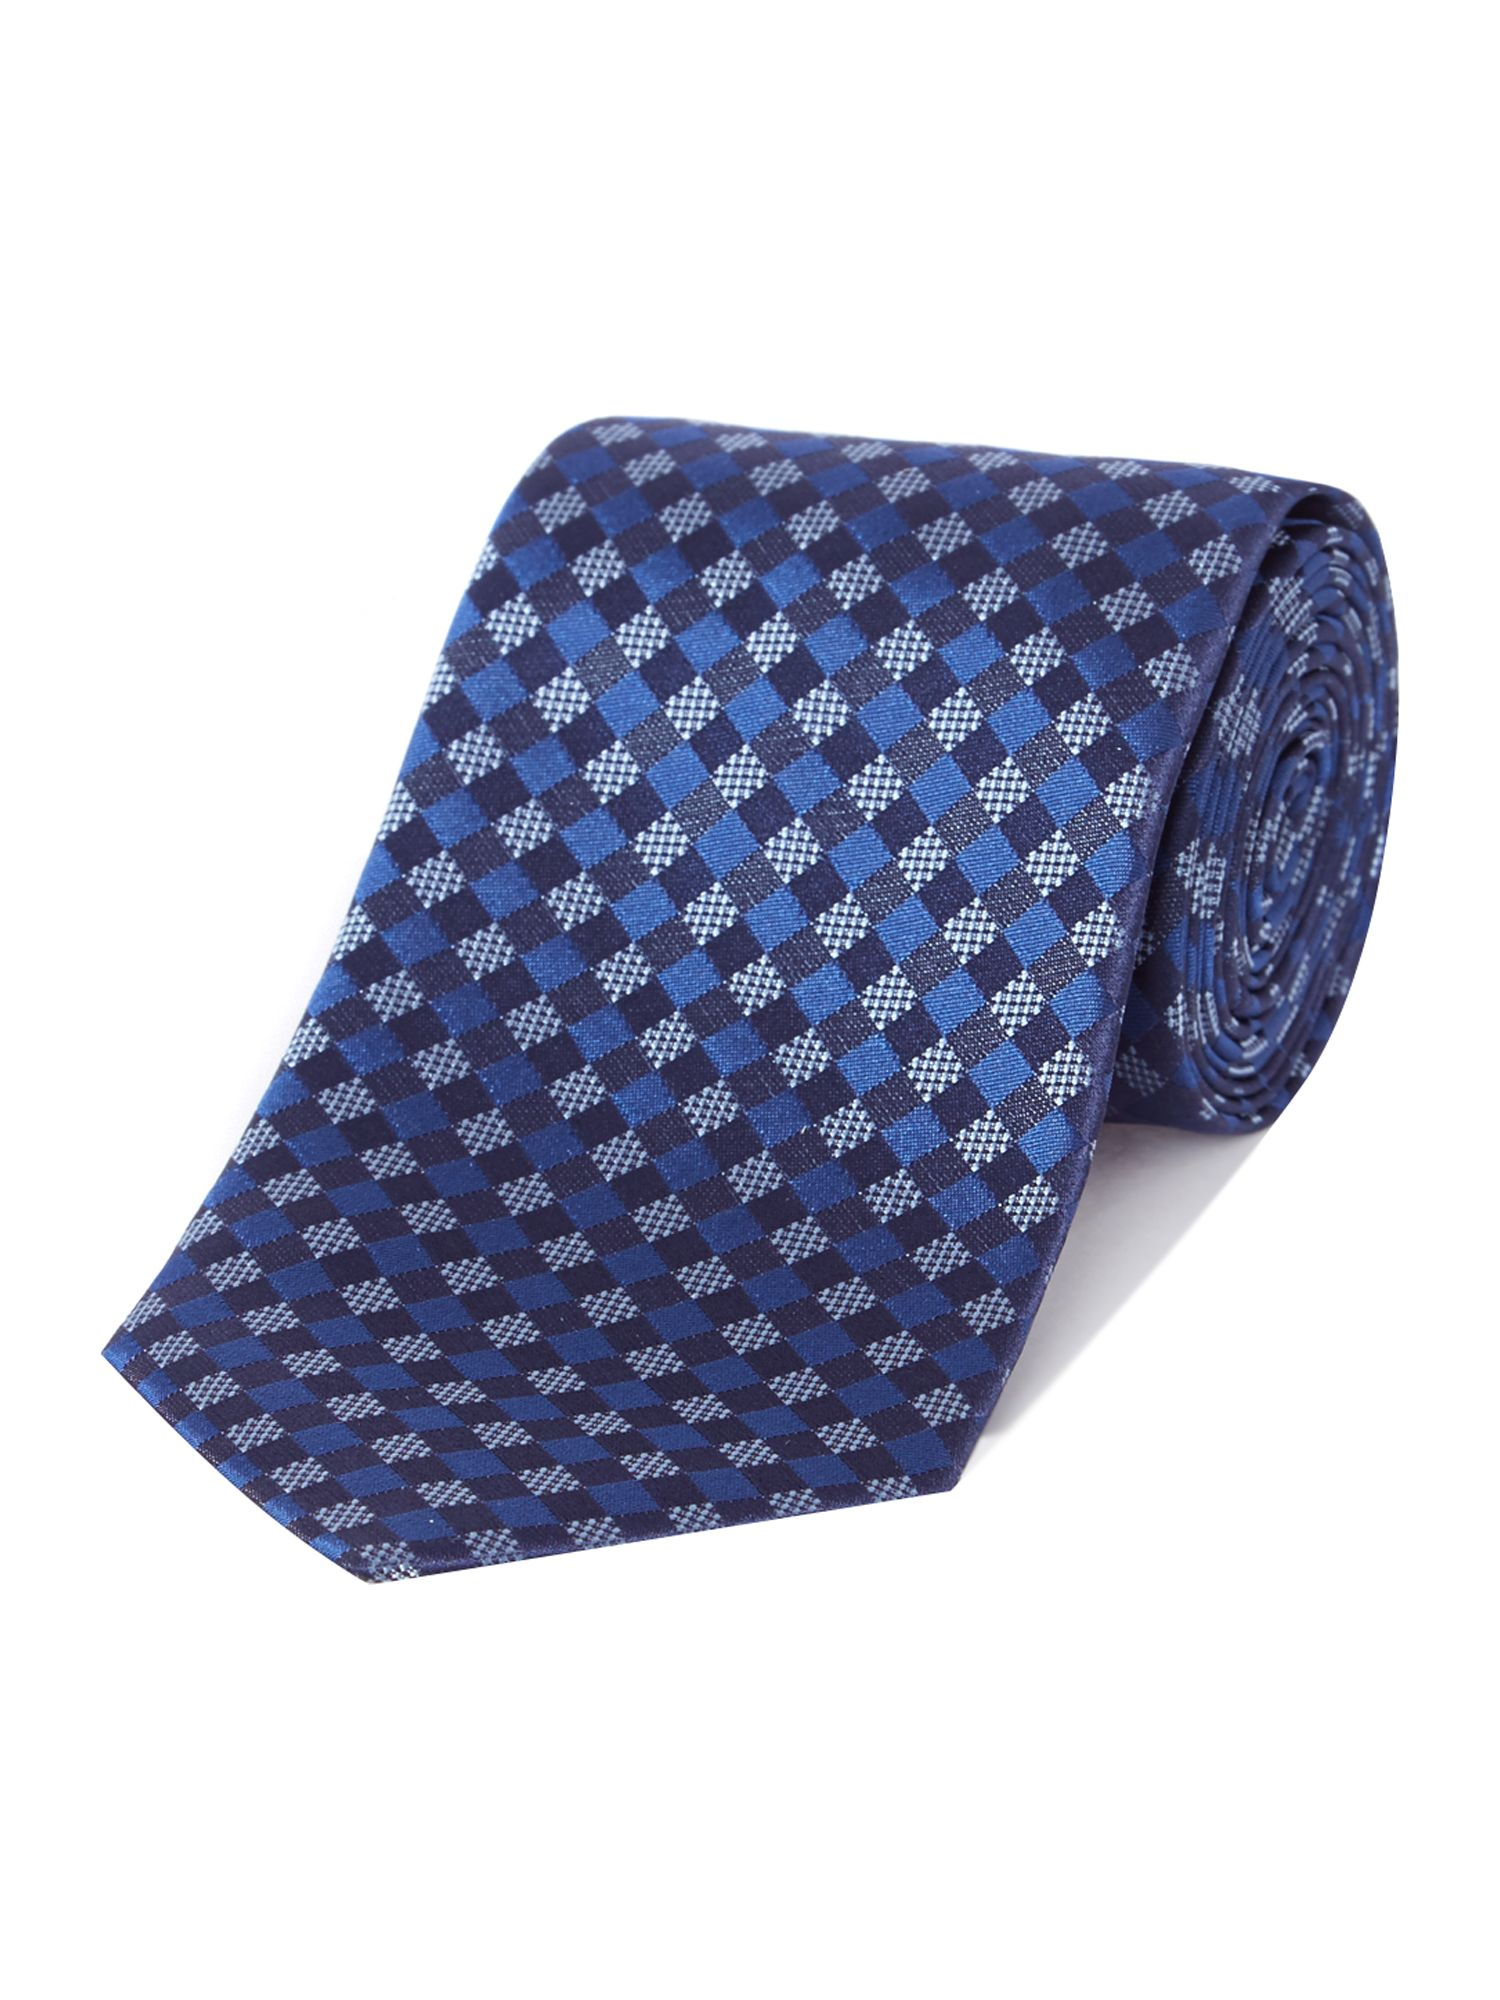 Diamond grid tie